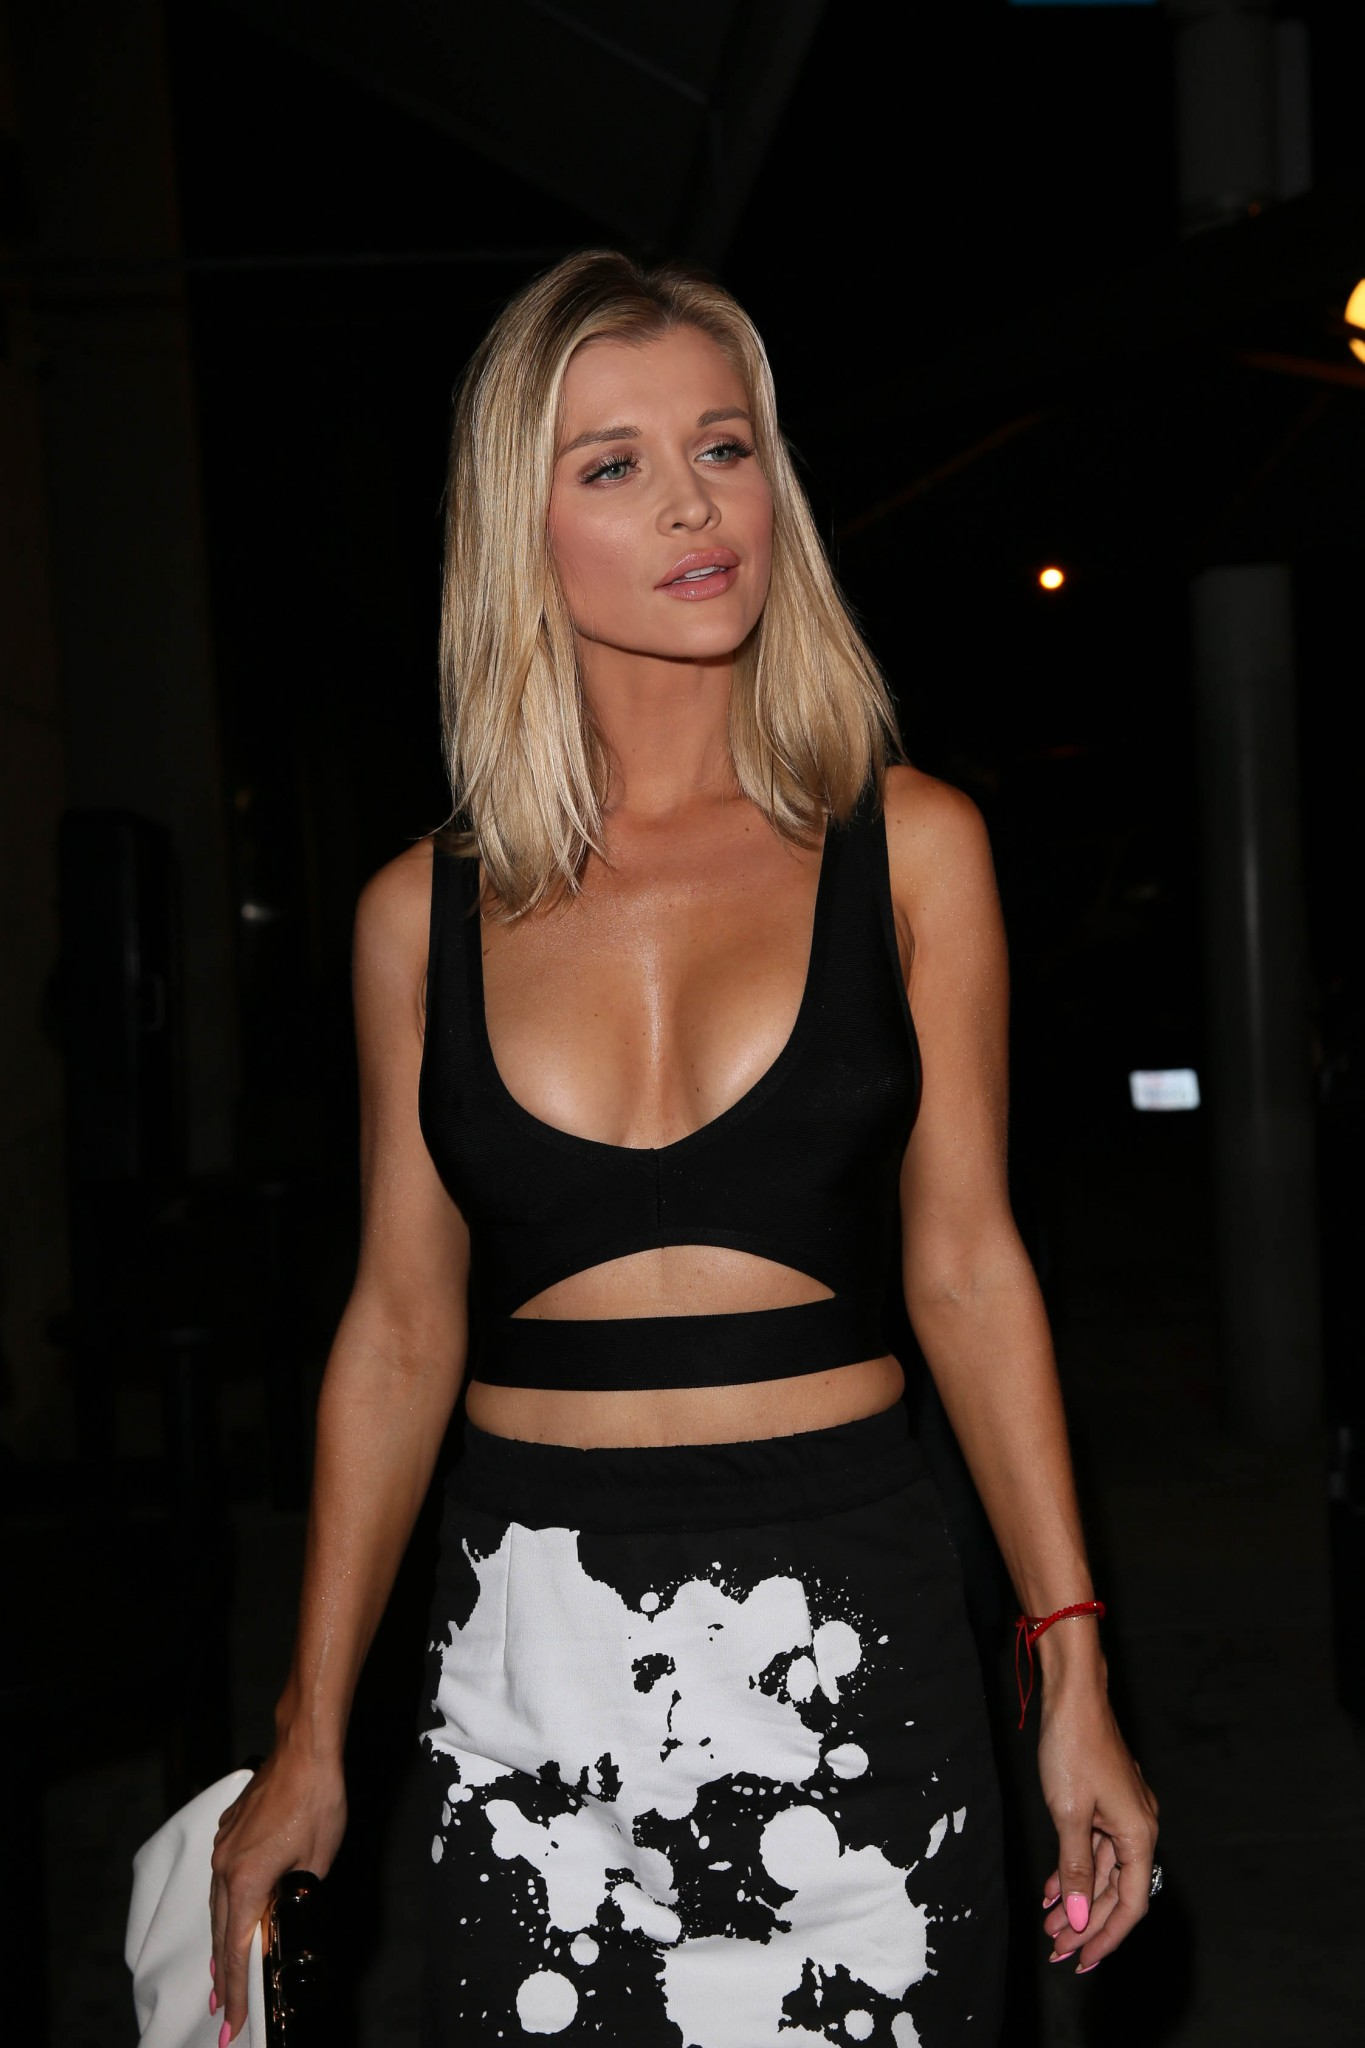 joanna-krupa-cleavage-at-craigs-restaurant-12